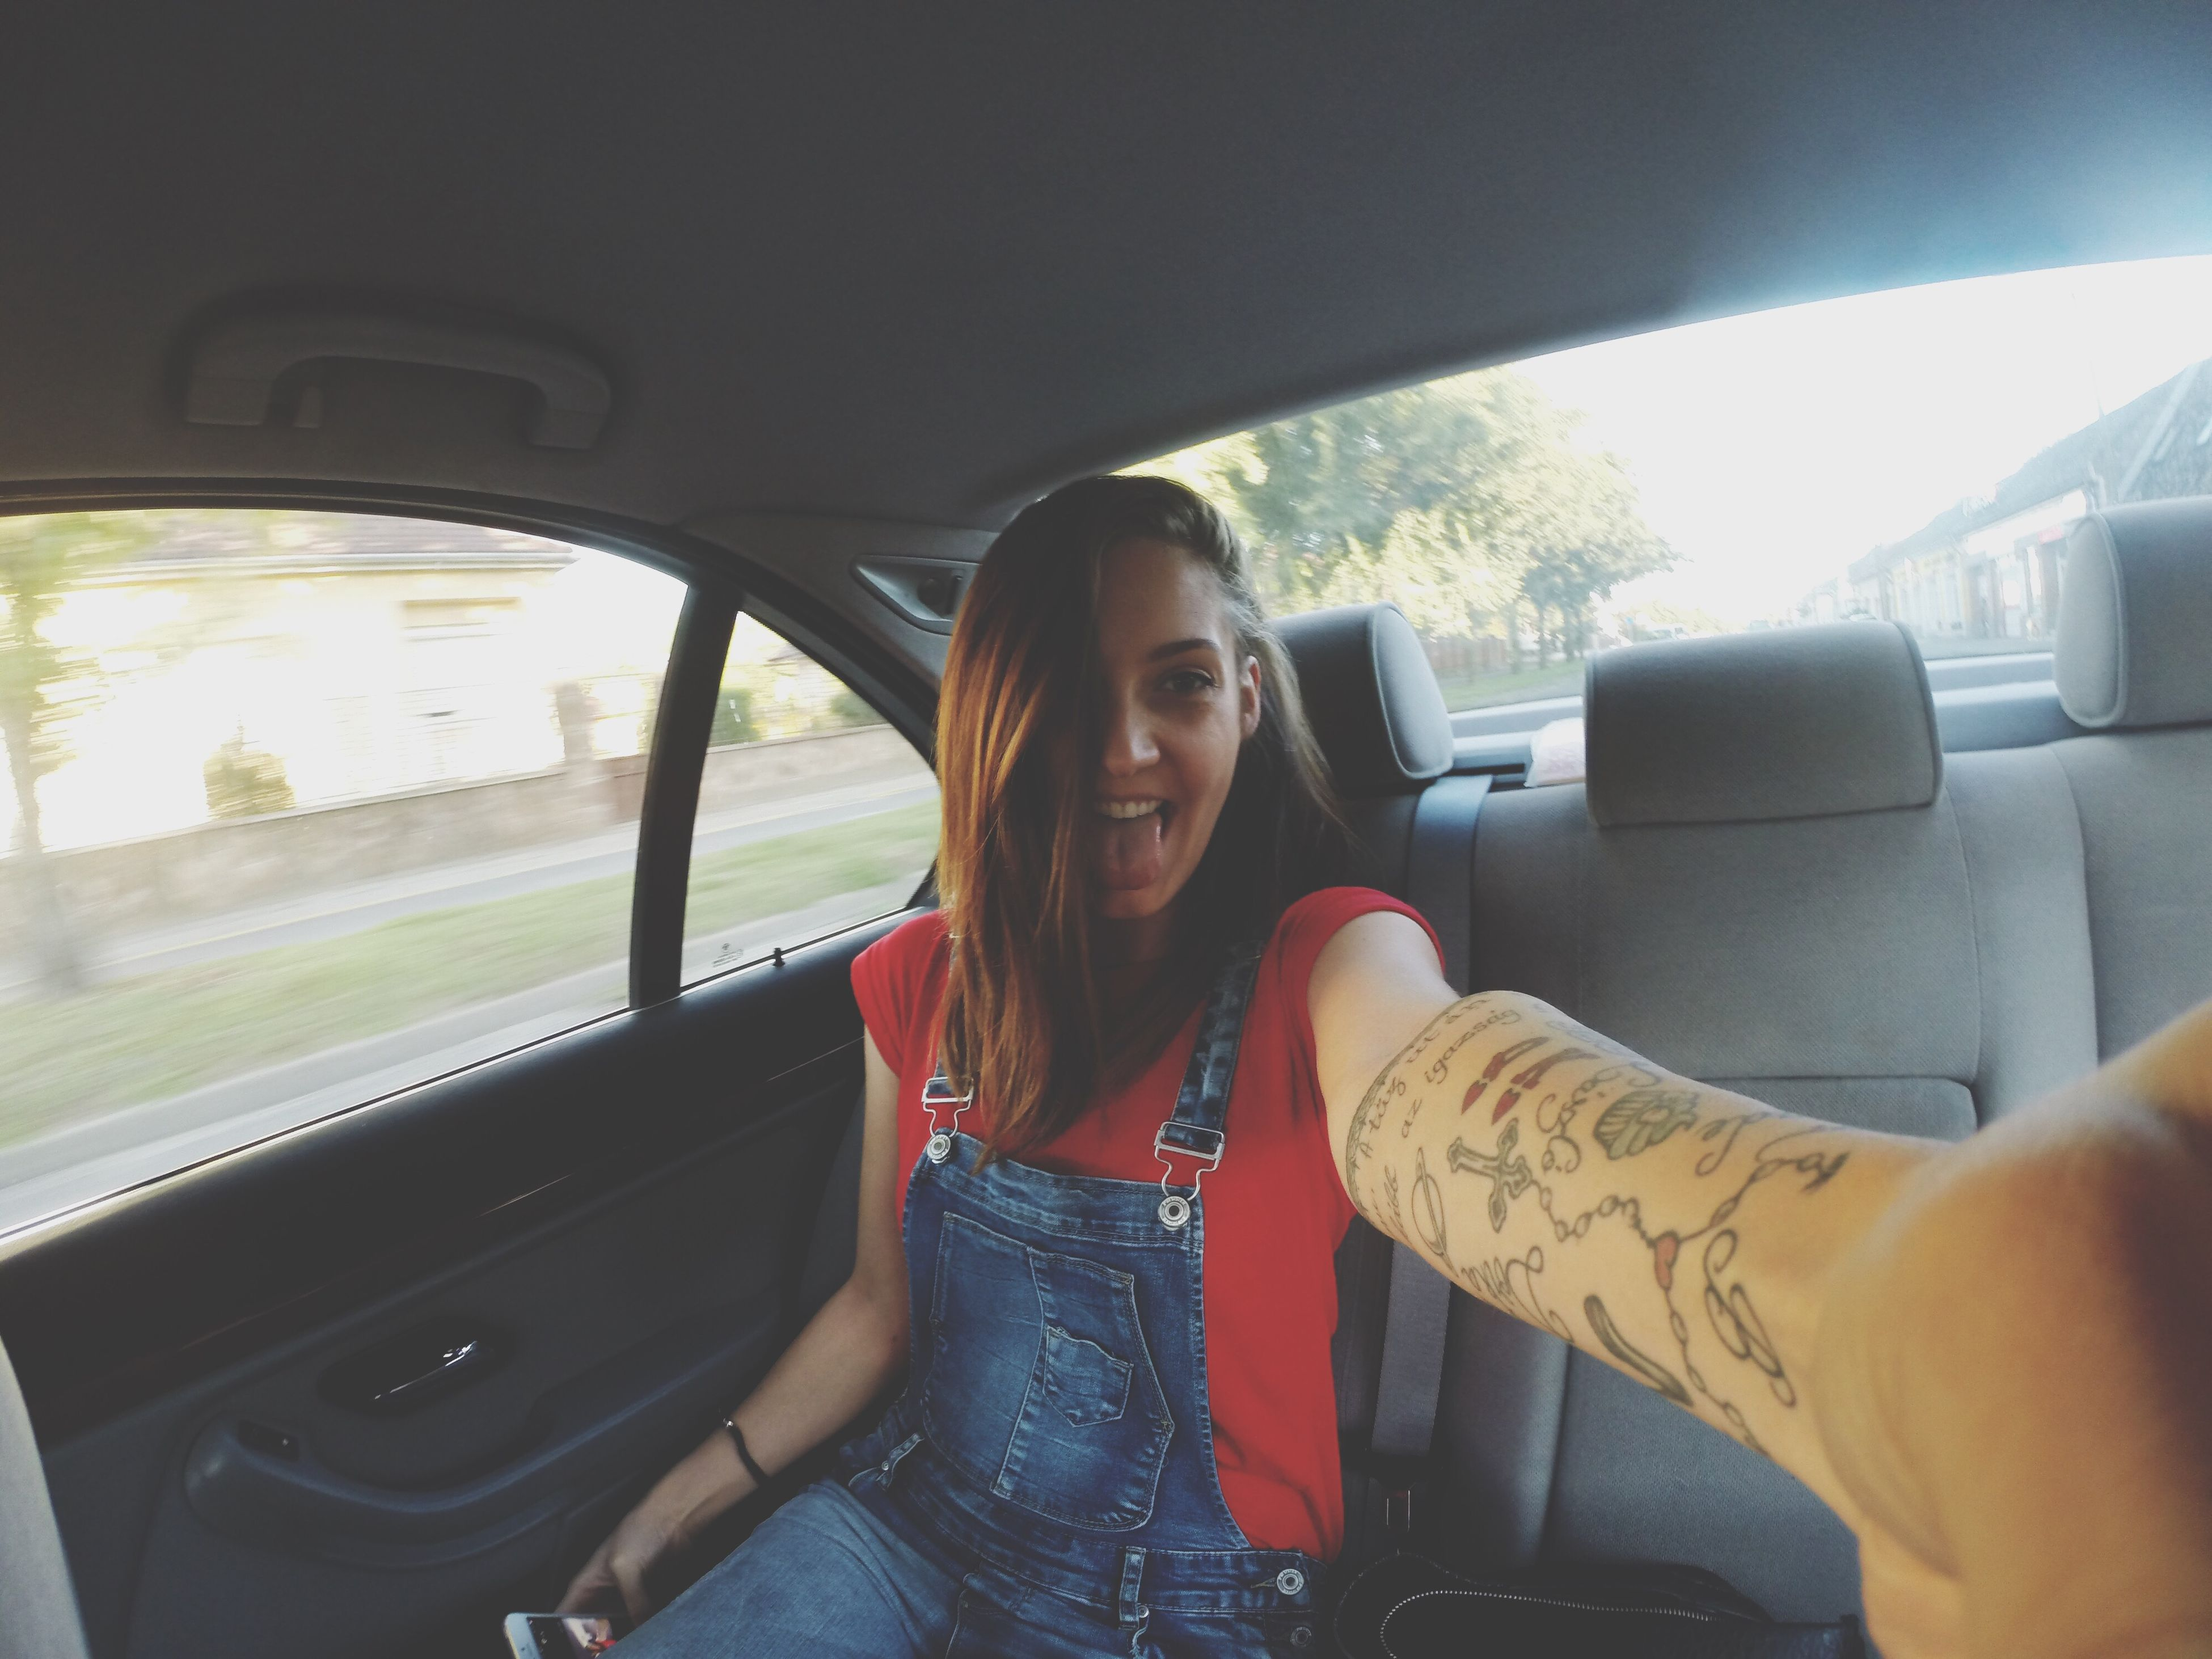 transportation, mode of transport, car, land vehicle, lifestyles, young adult, leisure activity, vehicle interior, young women, car interior, travel, sitting, person, sunglasses, window, casual clothing, portrait, looking at camera